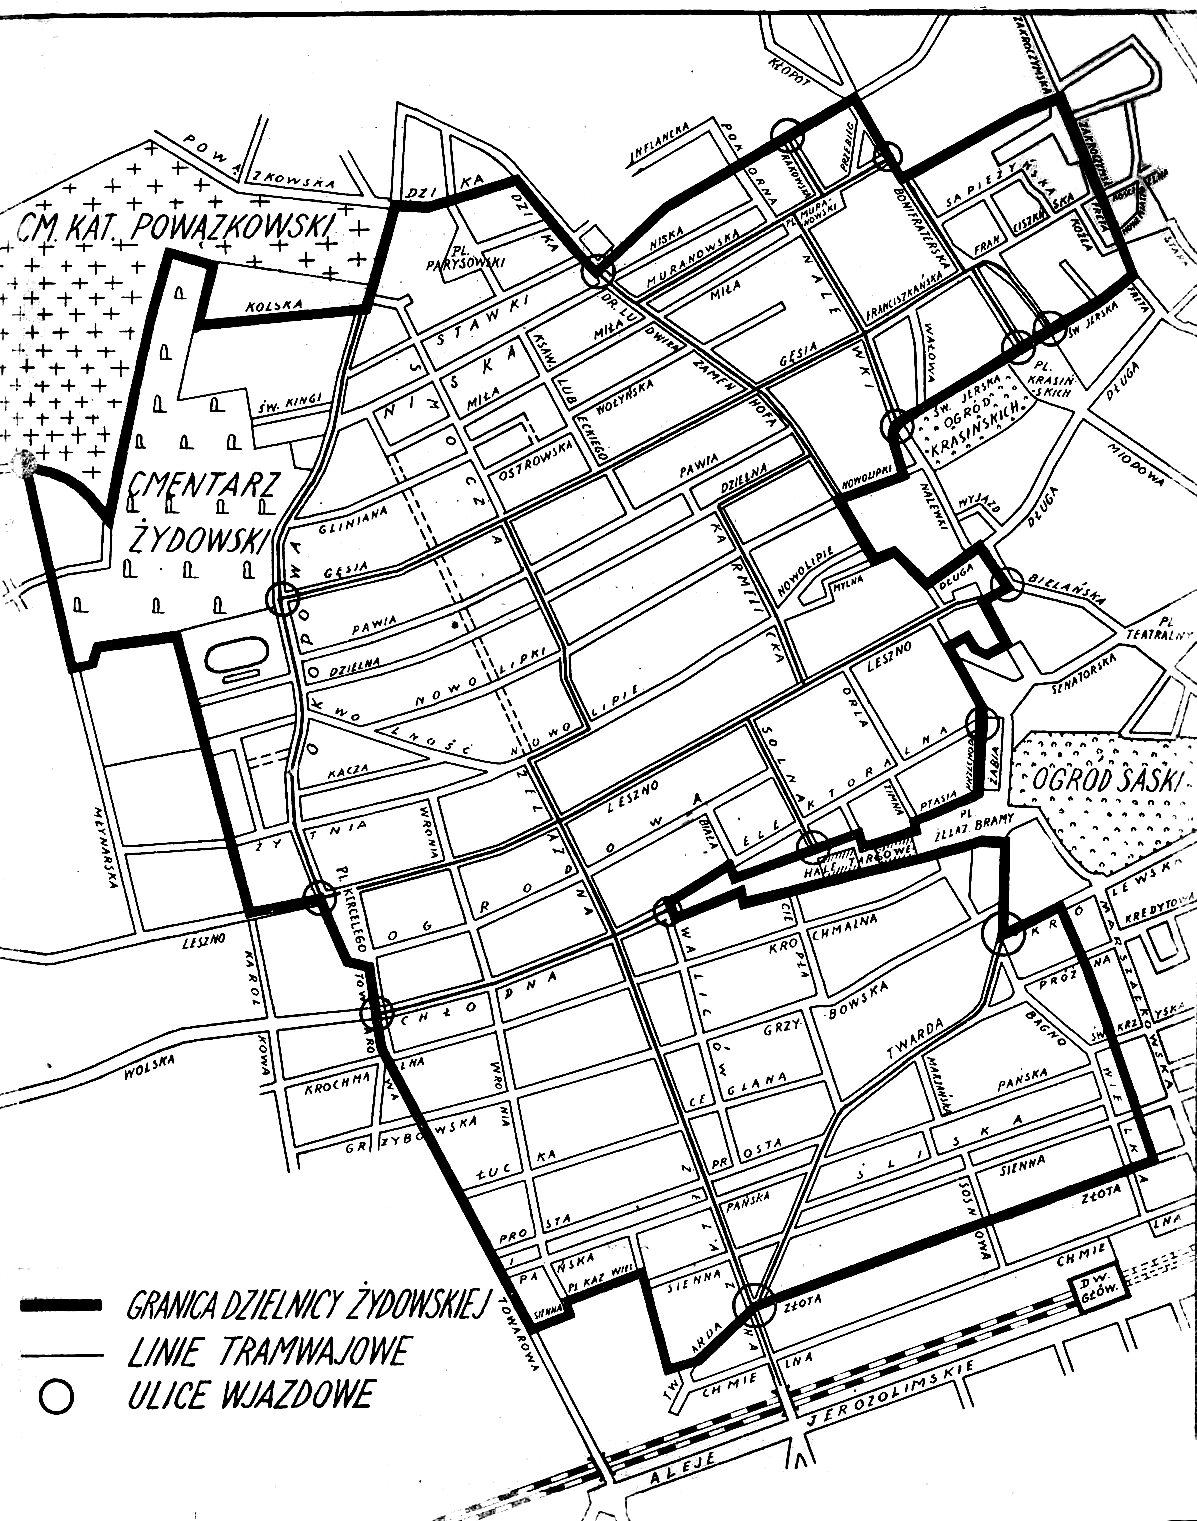 filewarsaw ghetto map  apng  wikimedia commons - filewarsaw ghetto map  apng